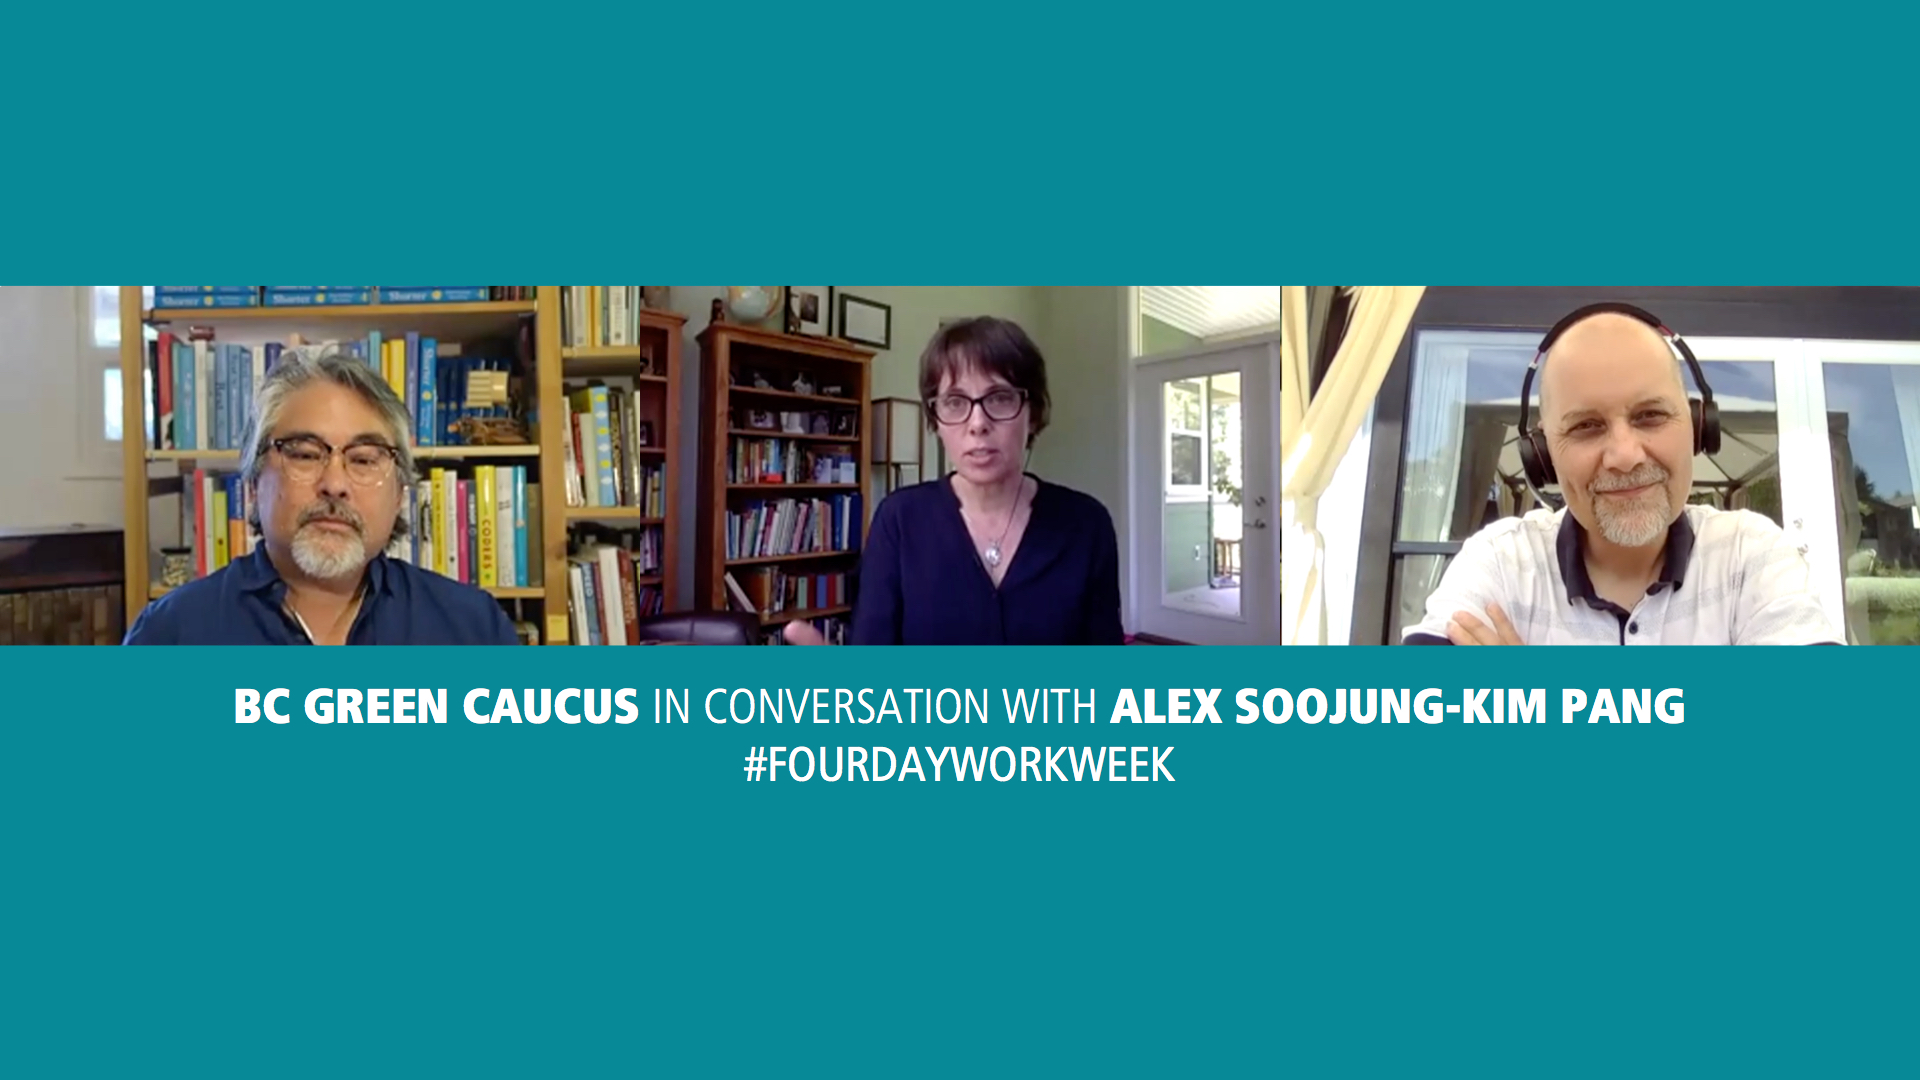 PODCAST: In conversation with Alex Soojung-Kim Pang – Author & Futurist